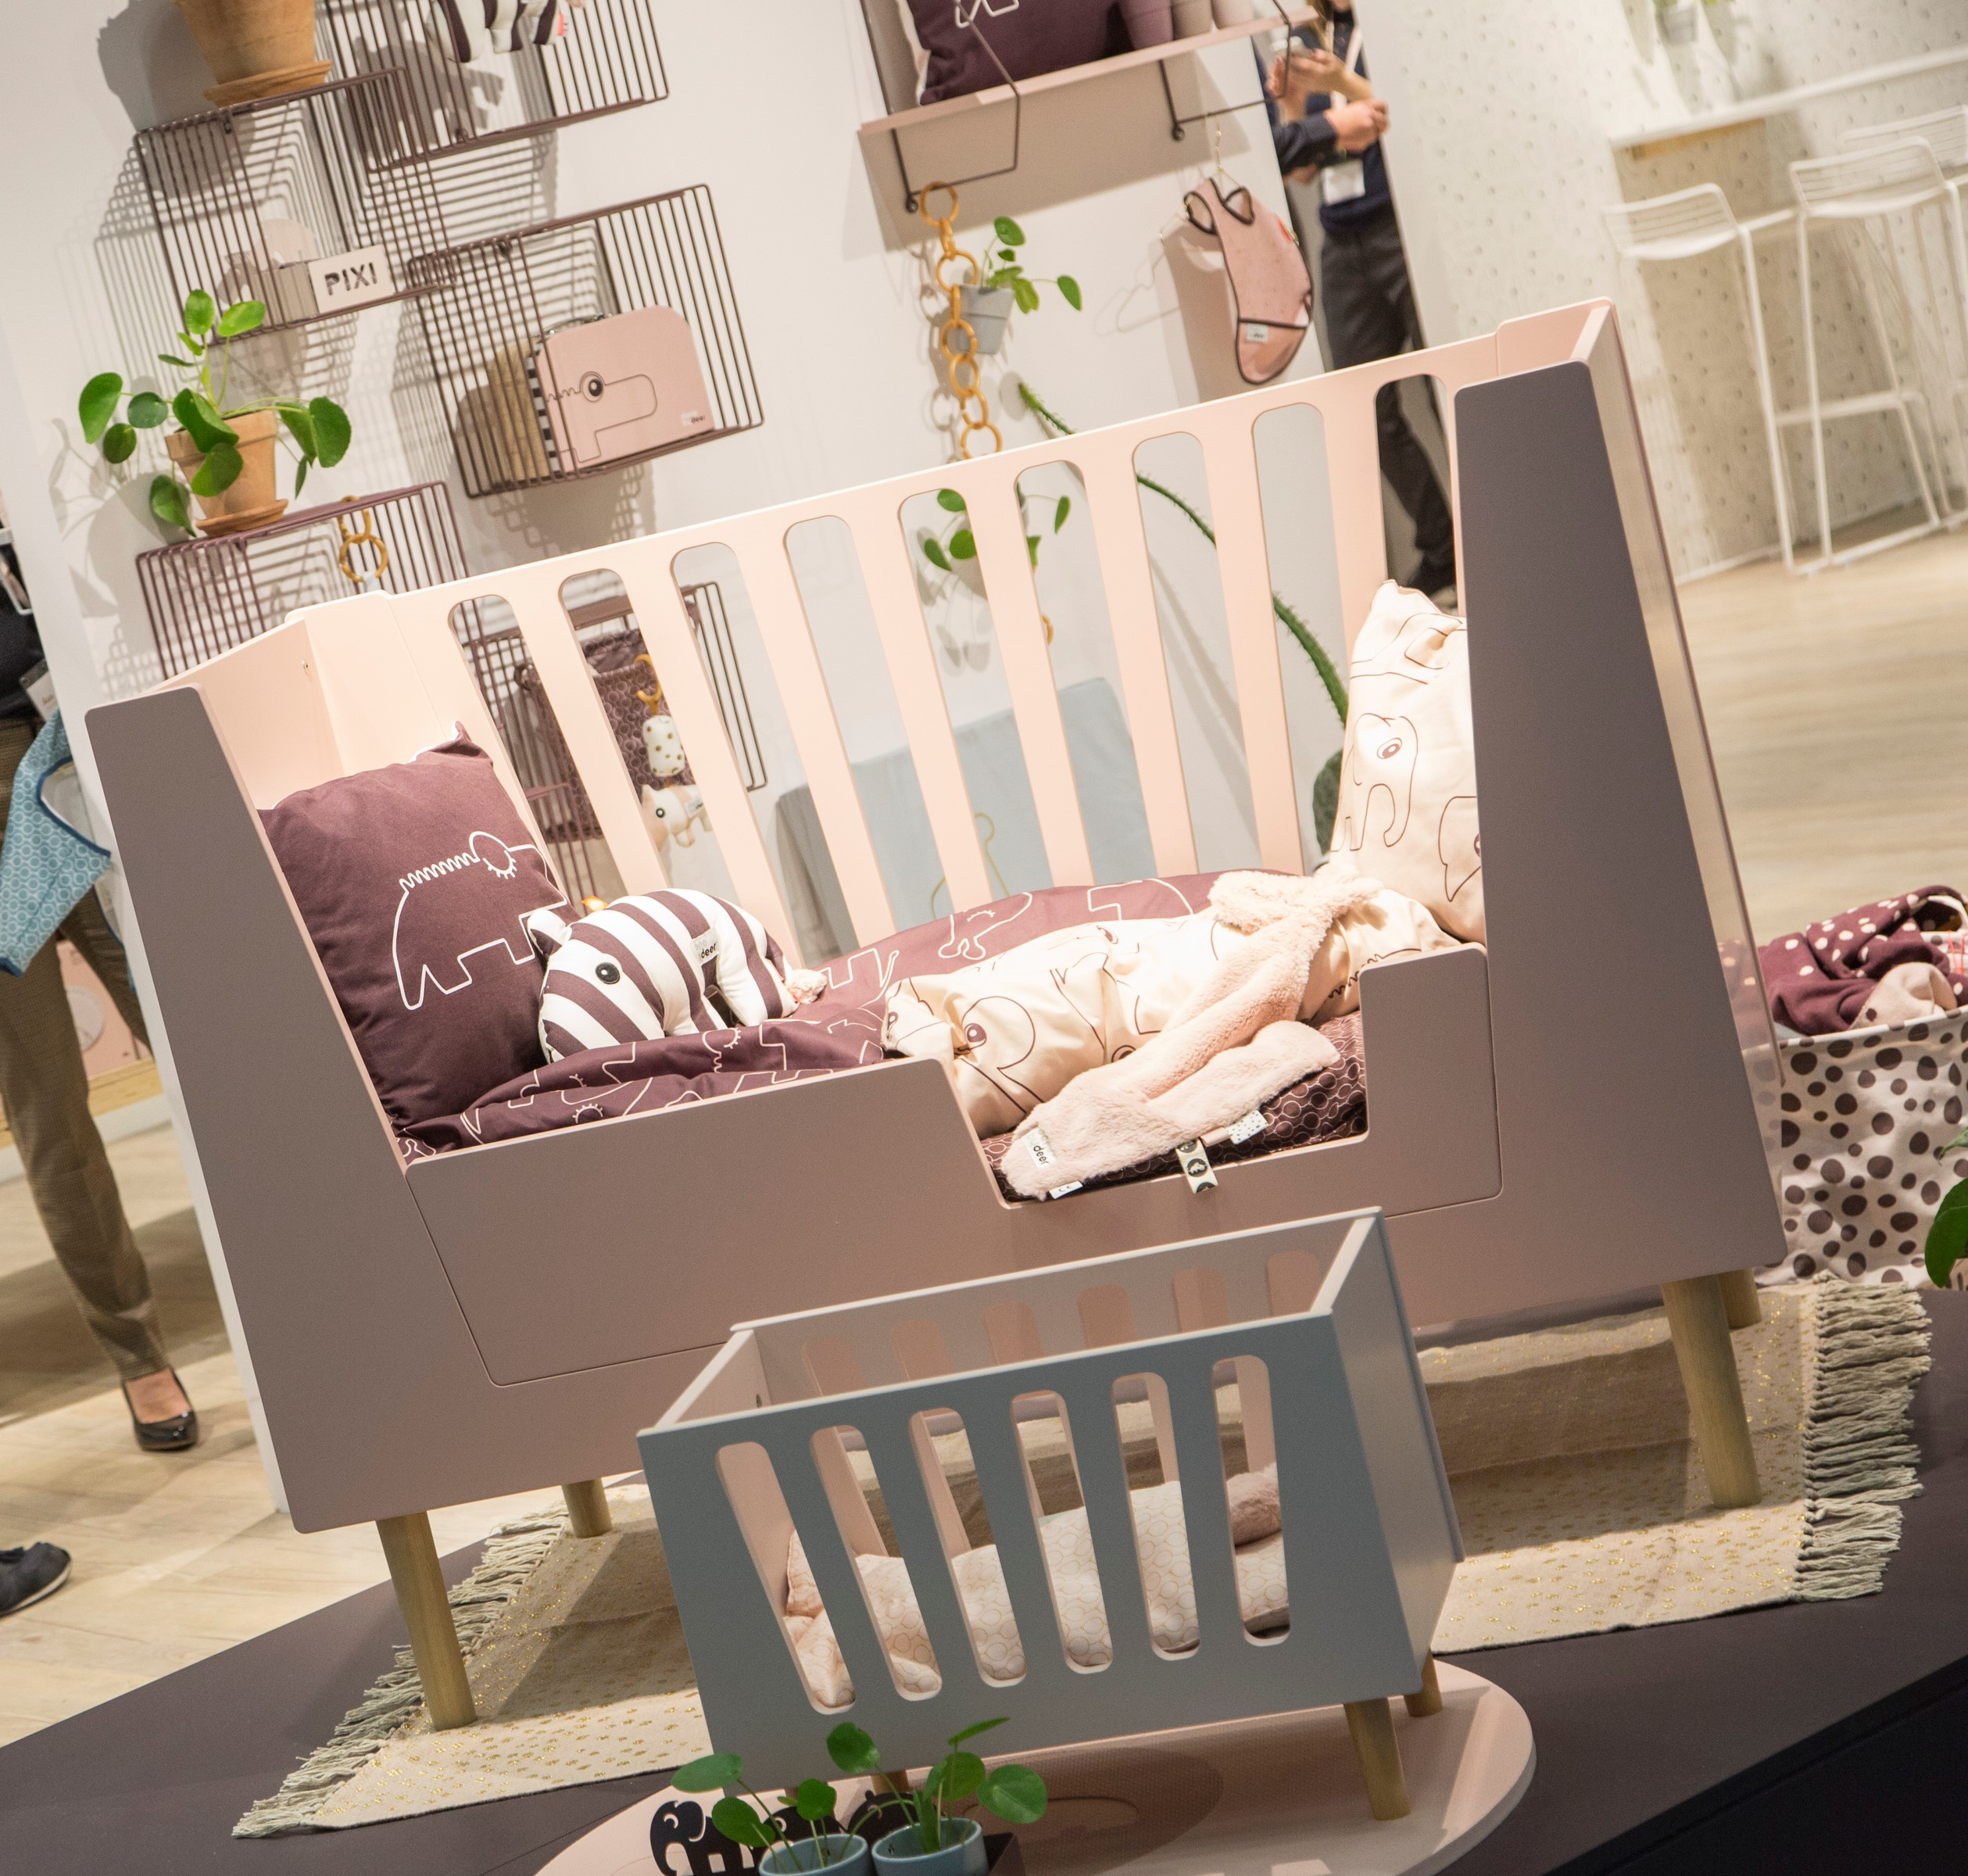 Crib: everything for baby's peaceful slumber